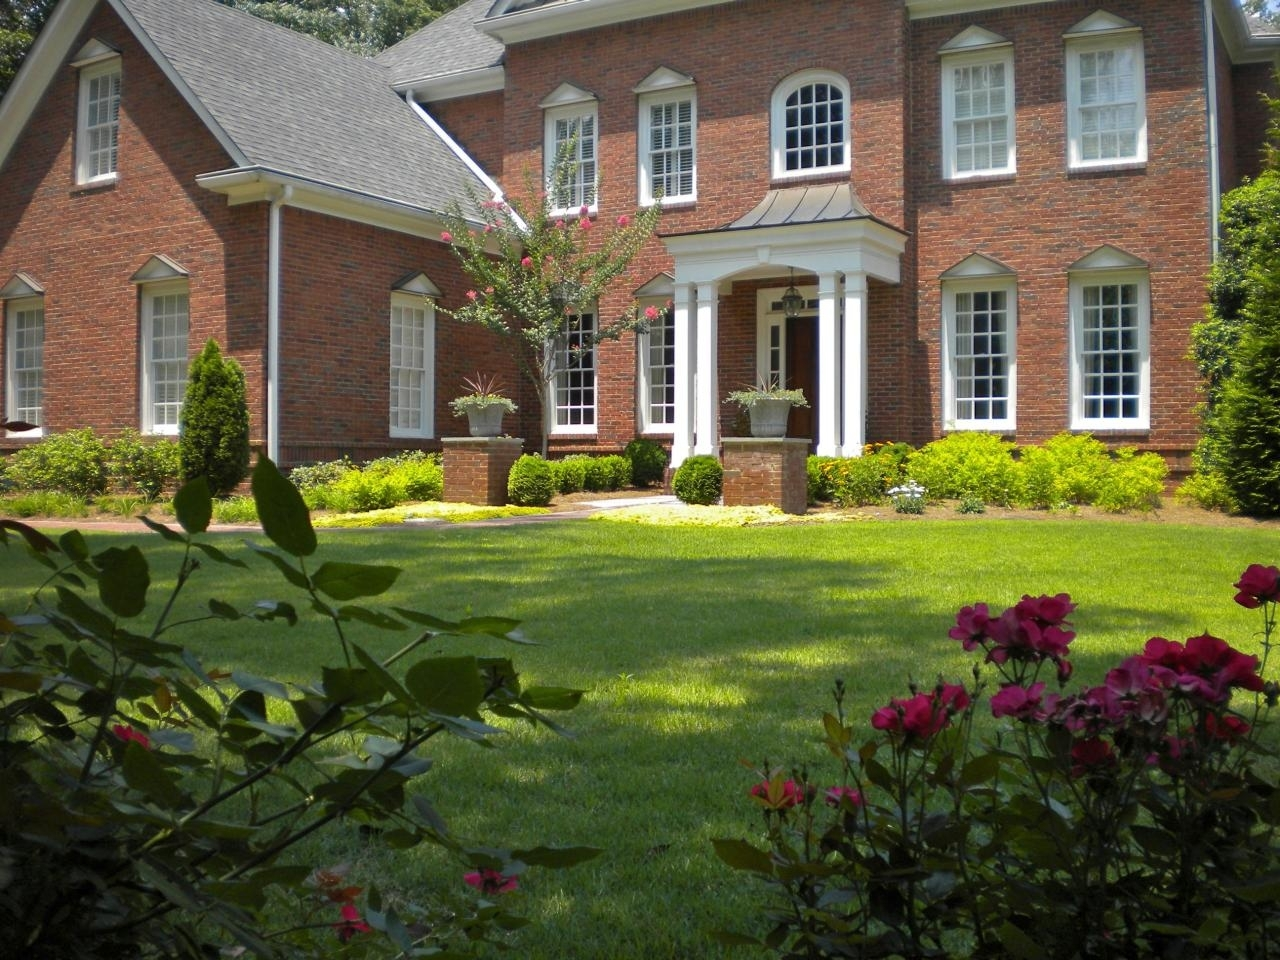 Image of: Curb Appeal Landscaping Hgtv Intended For Curb Appeal Landscaping Curb Appeal Landscaping Ideas